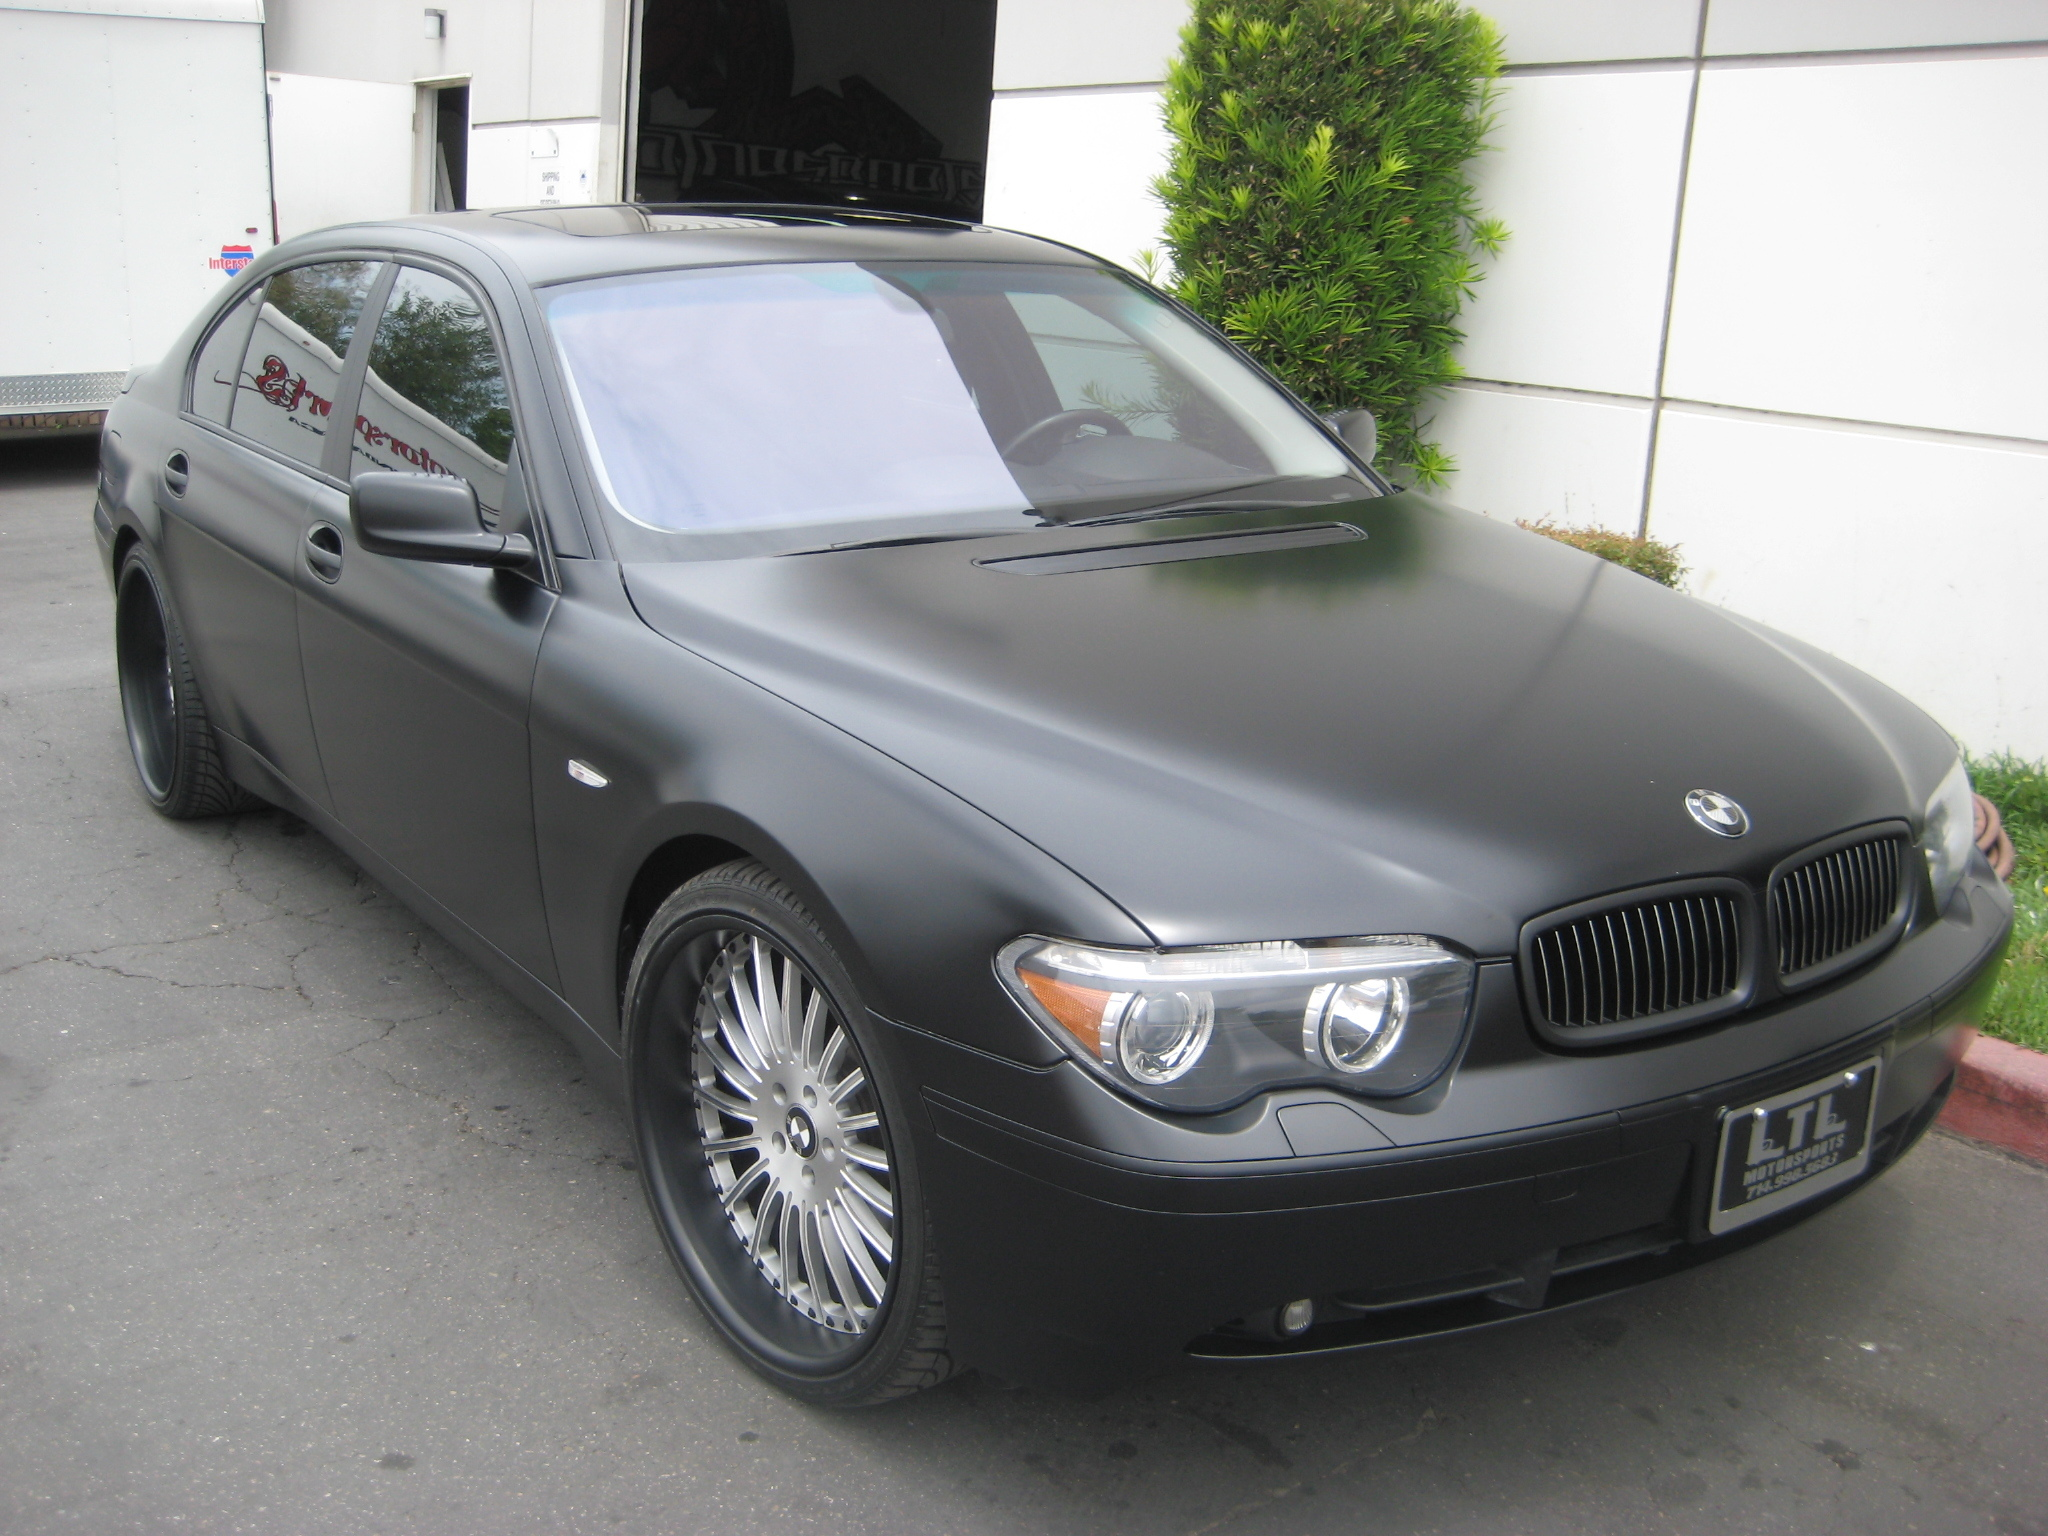 beemac's 2002 BMW 7 Series